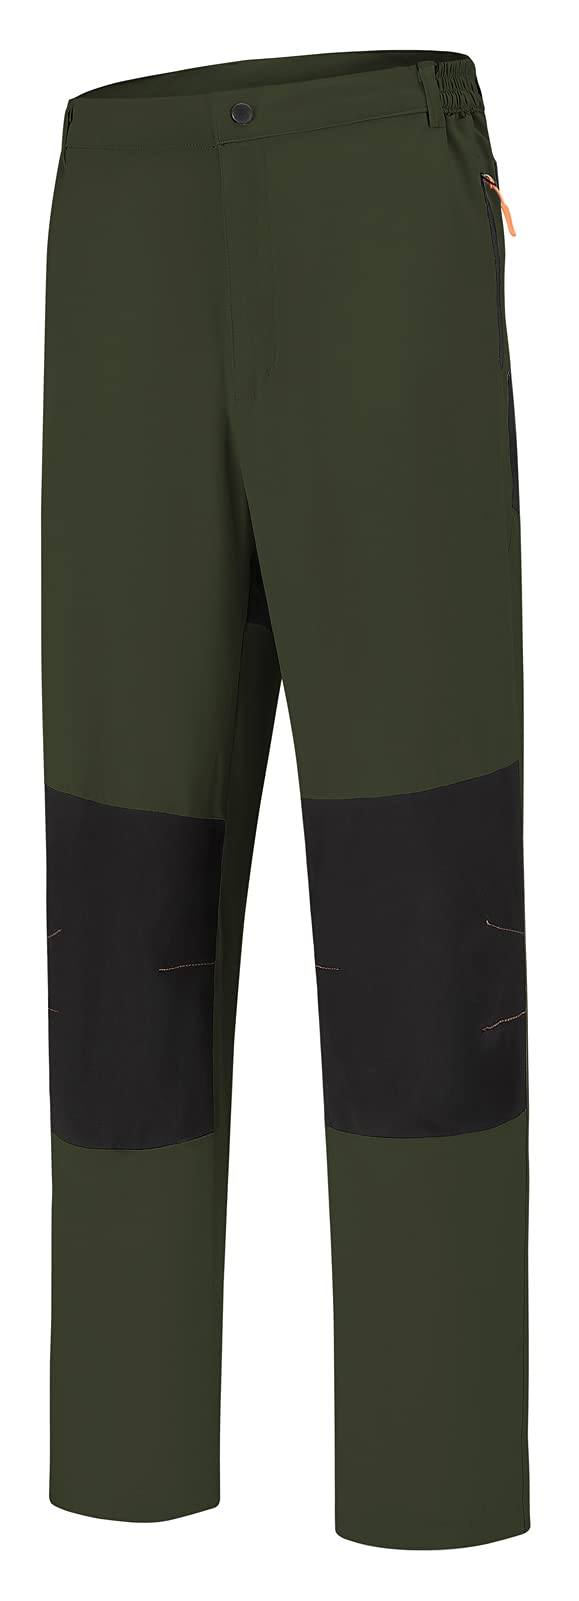 SPOSULEI Mens Hiking Athletic Pants Quick-Dry Lightweight Water Resistant Sweatpants with Zipper